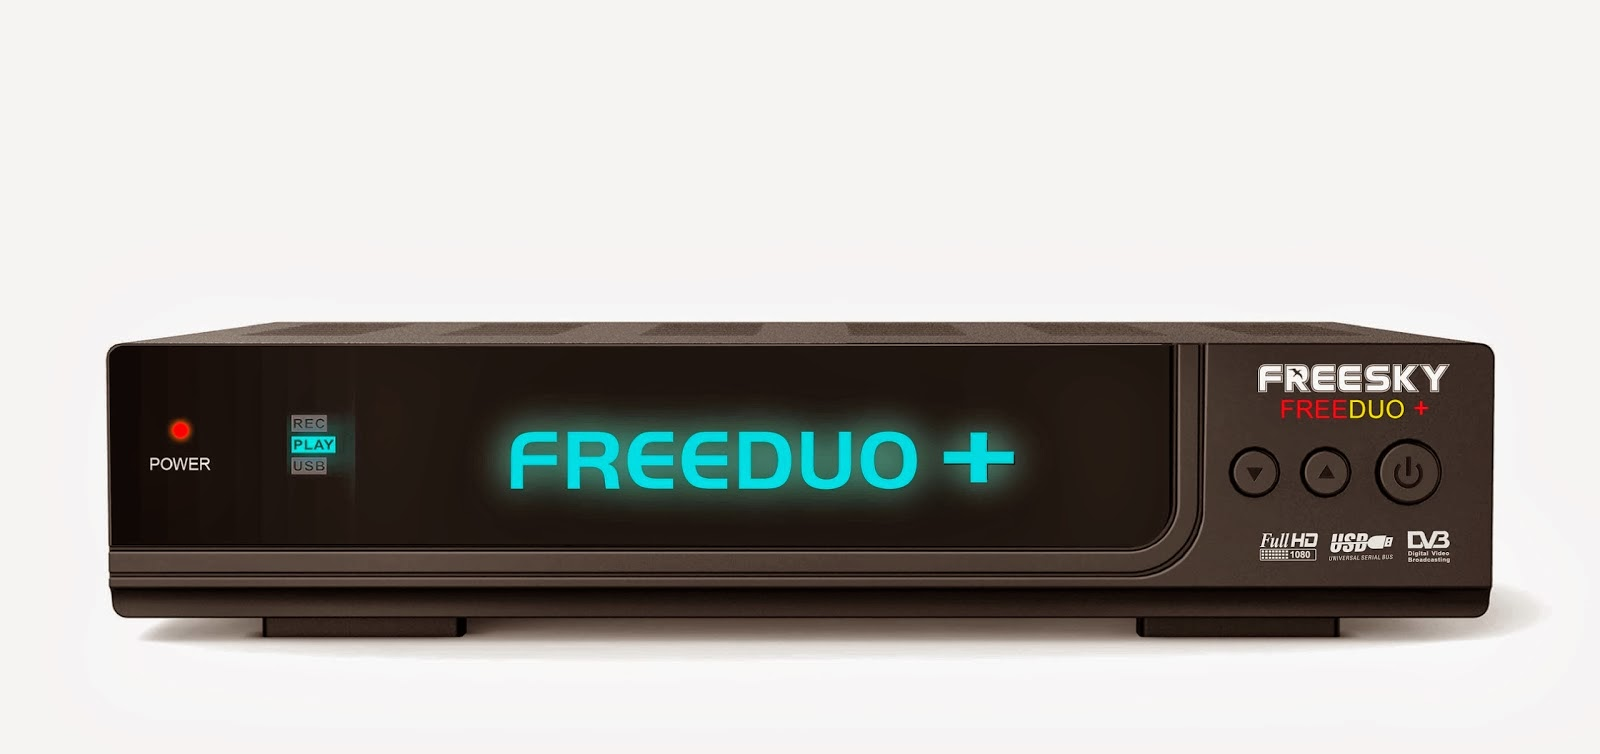 FREESKY THE ROCK HD GPRS, FREEDUO HD, FREEDUO + ​​PLUS HD, DUO X+, LA ROCA, FREEDUO F1, FREESKY TV ATUALIZAÇÃO - Freeduo+